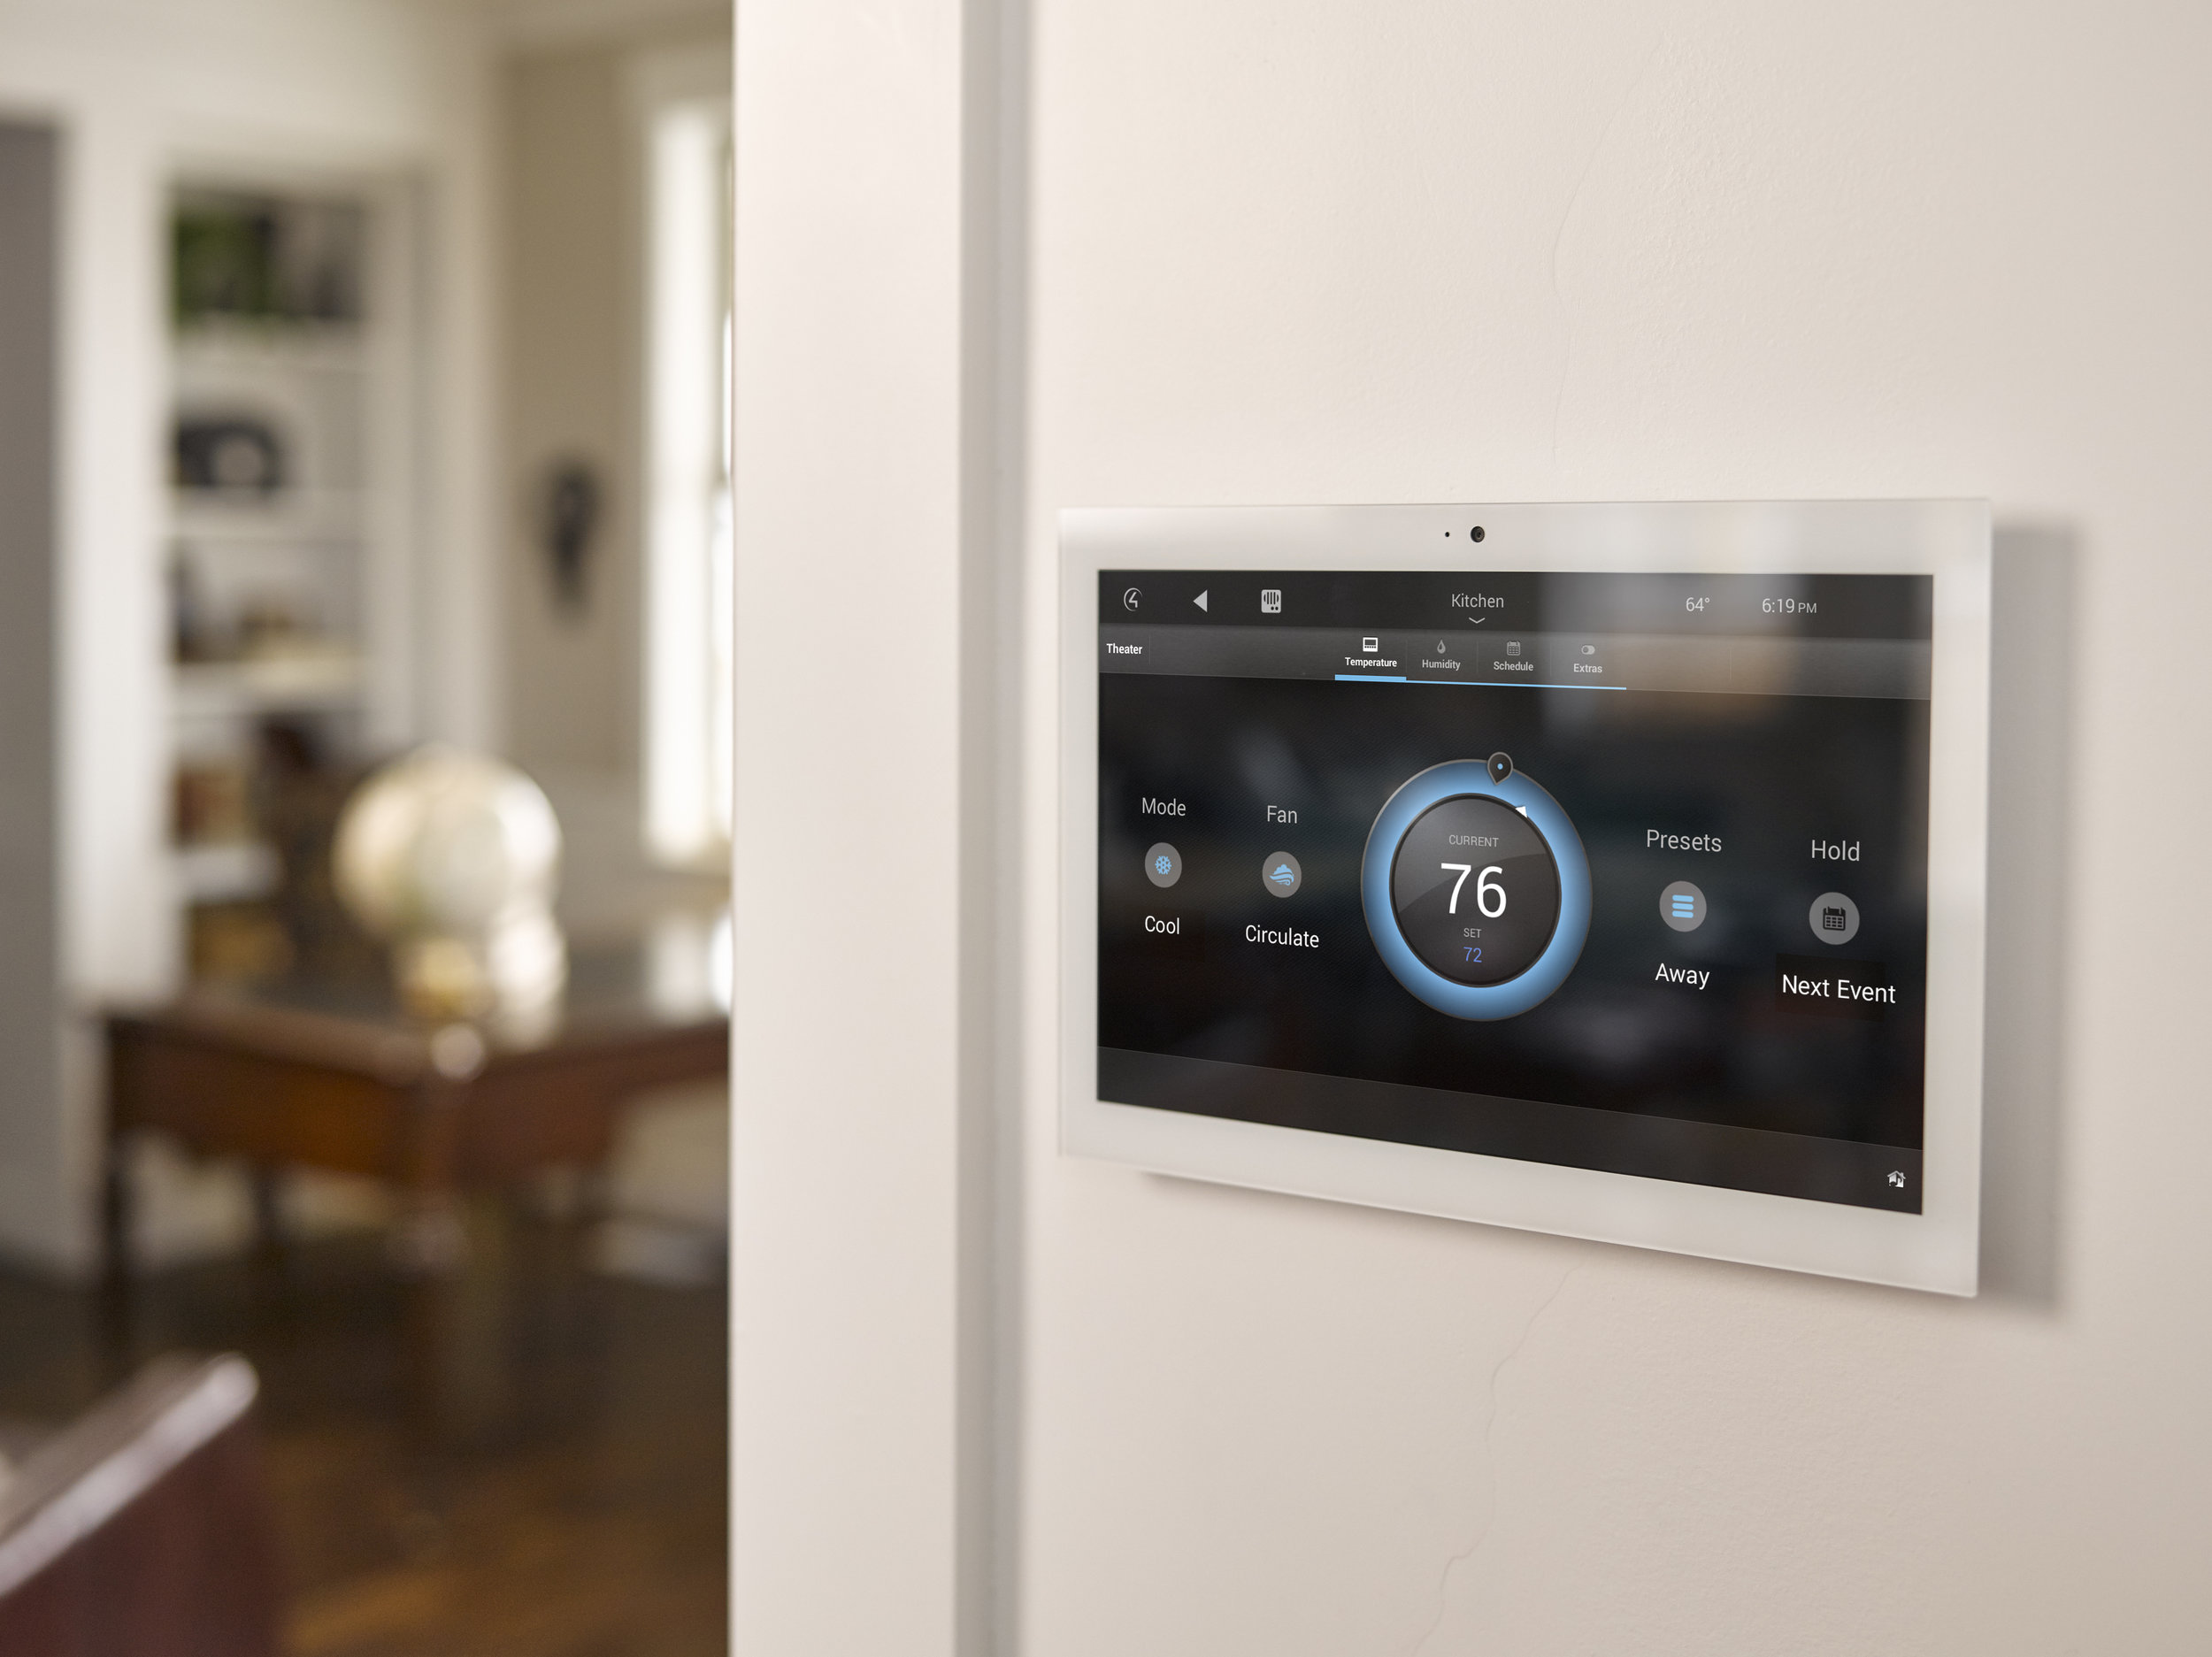 Touchscreens - Touchscreens are very useful in main locations of the home like the kitchen or master bedroom. Touchscreens provide a dedicated way of controlling your entire system without searching for your phone or remote. Touchscreens can also offer additional features like intercom between rooms.